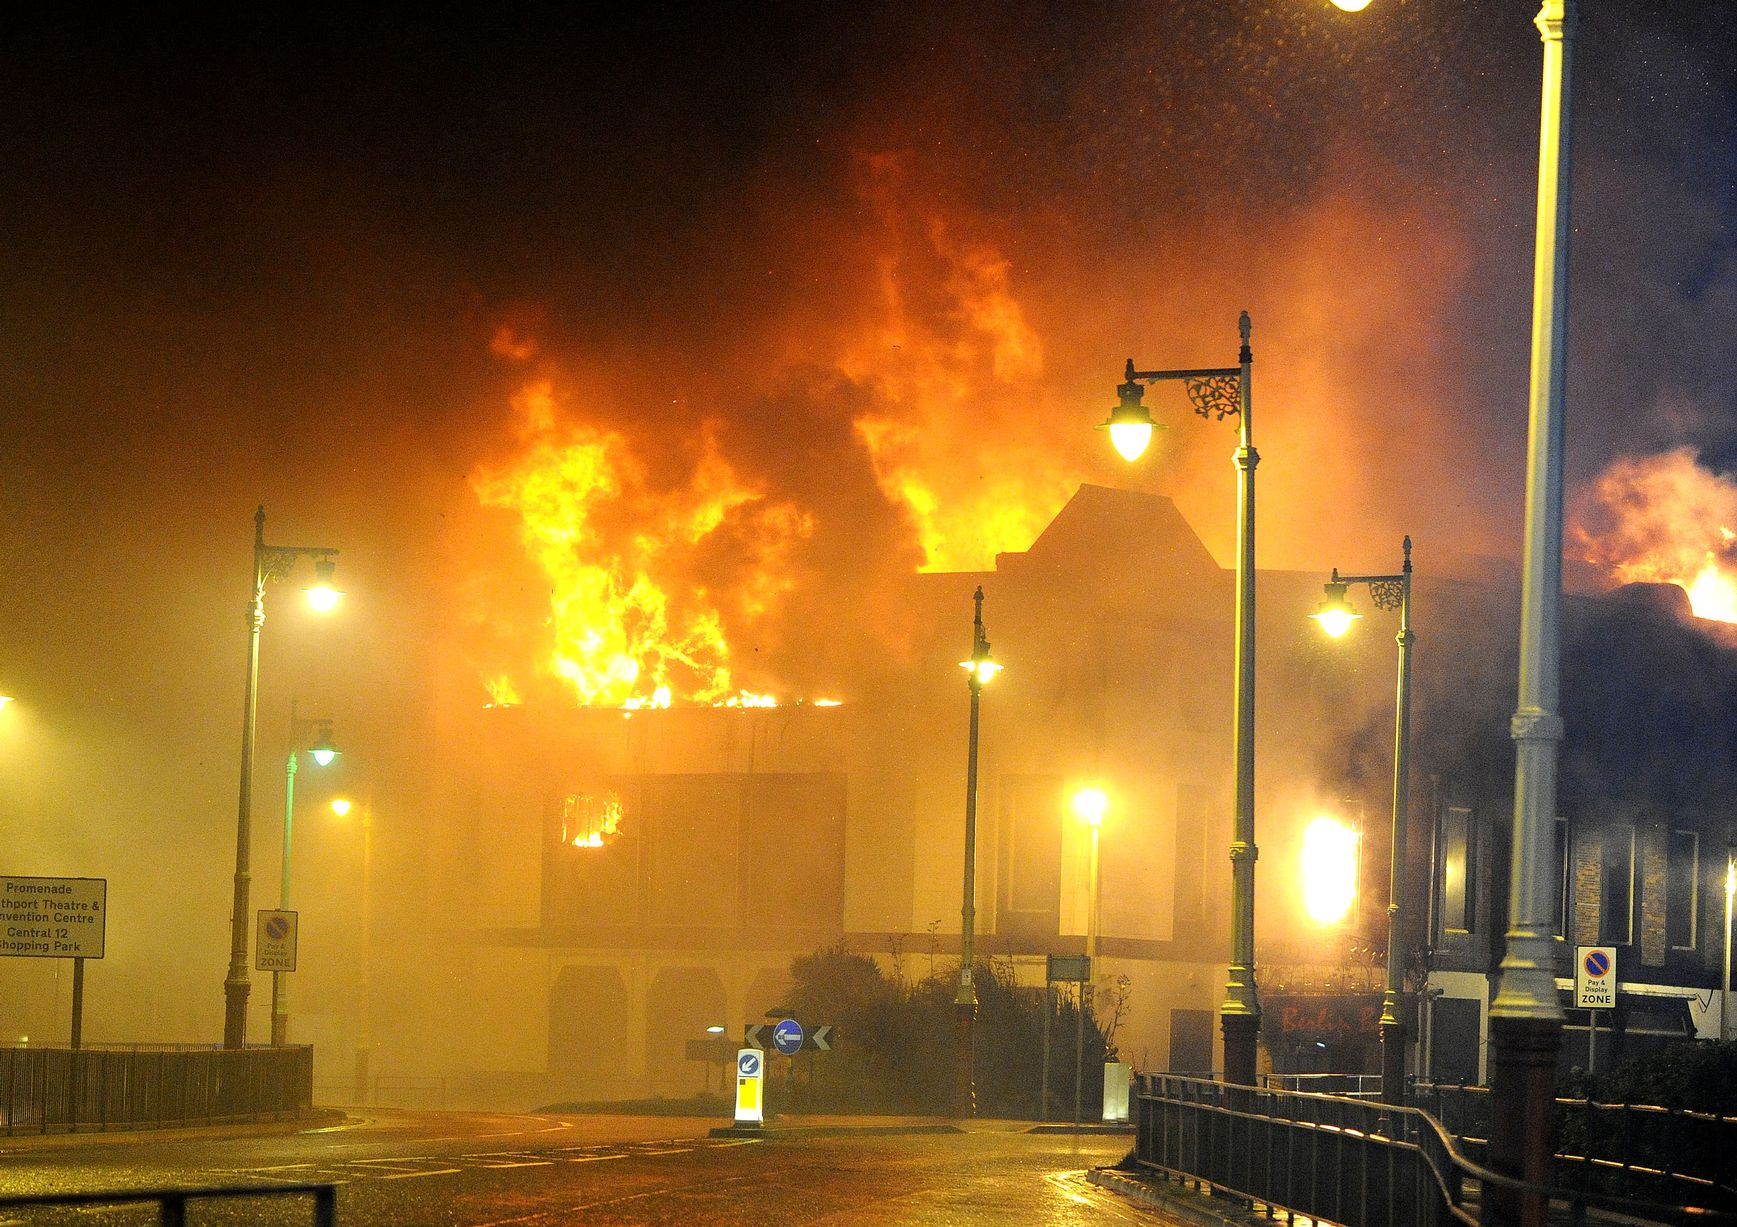 The Kingsway nightclub in Southport on fire on September 6, 2010